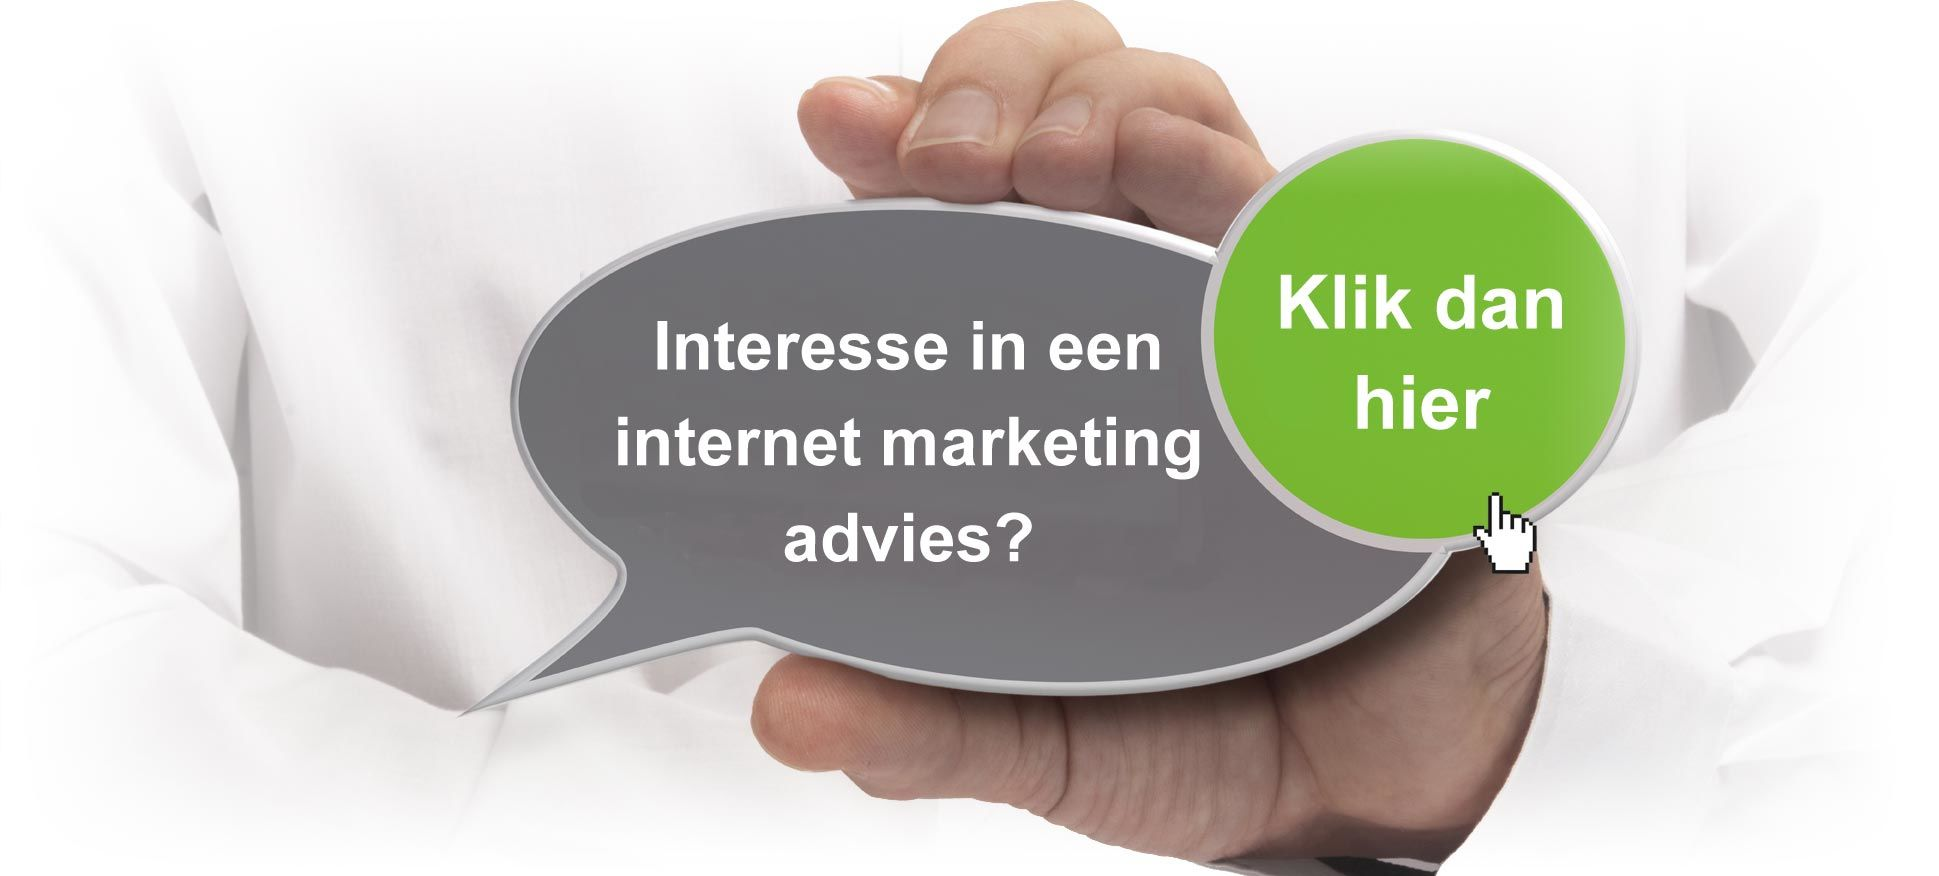 ervaring met doors internet marketing